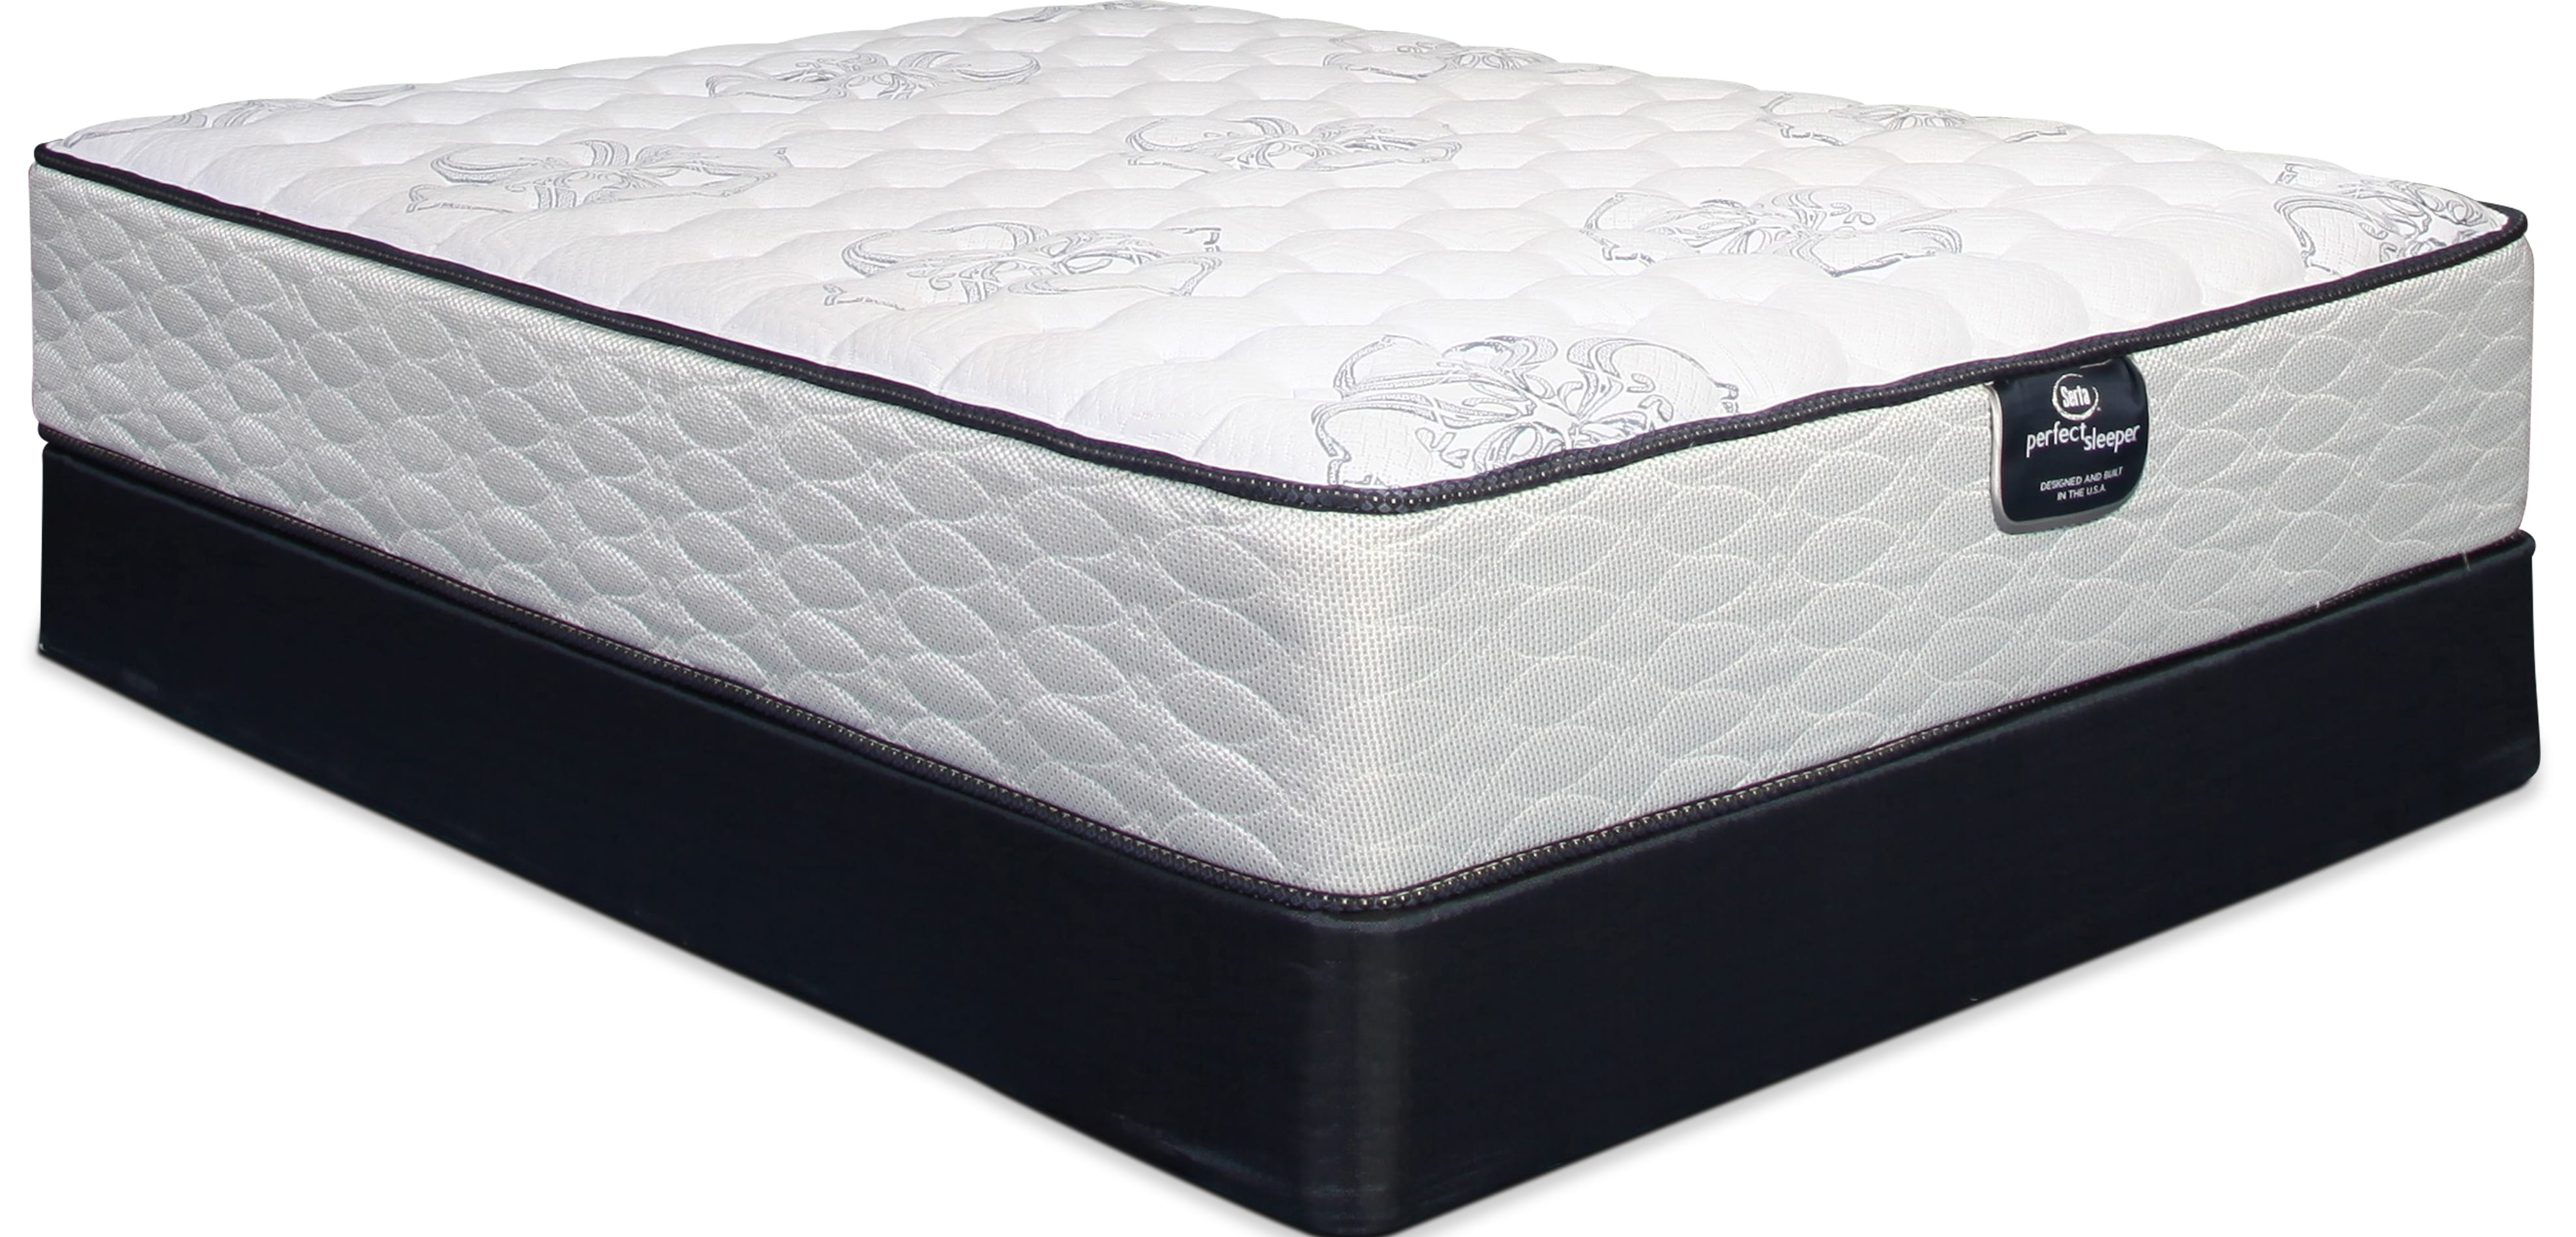 Serta Perfect Sleeper Ultra Firm Twin XL Mattress and Boxspring